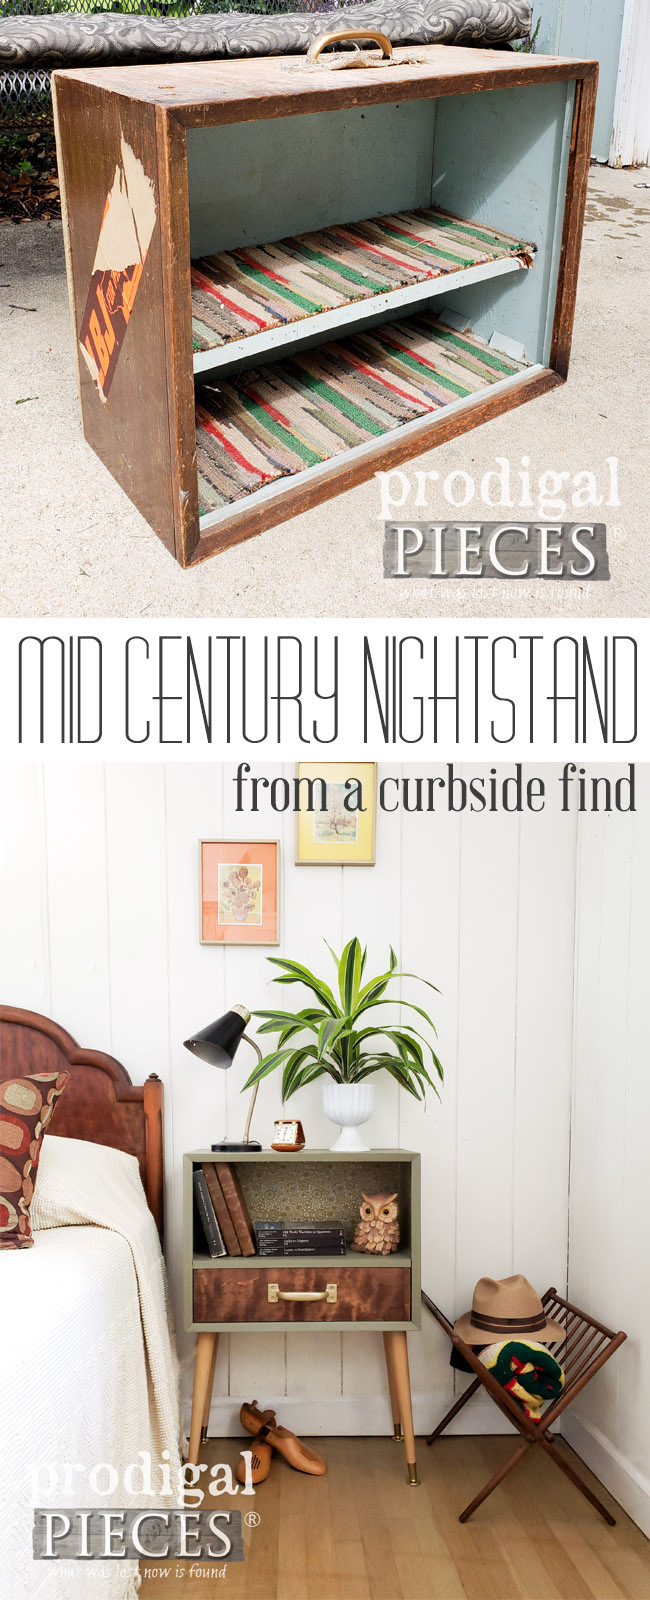 Say whaaat? Larissa of Prodigal Pieces found a piece of handmade luggage on the curb and turned it into a Mid Century Modern Nightstand. Awesome! See the DIY details at prodigalpieces.com #prodigalpieces #diy #handmade #homedecor #shopping #furniture